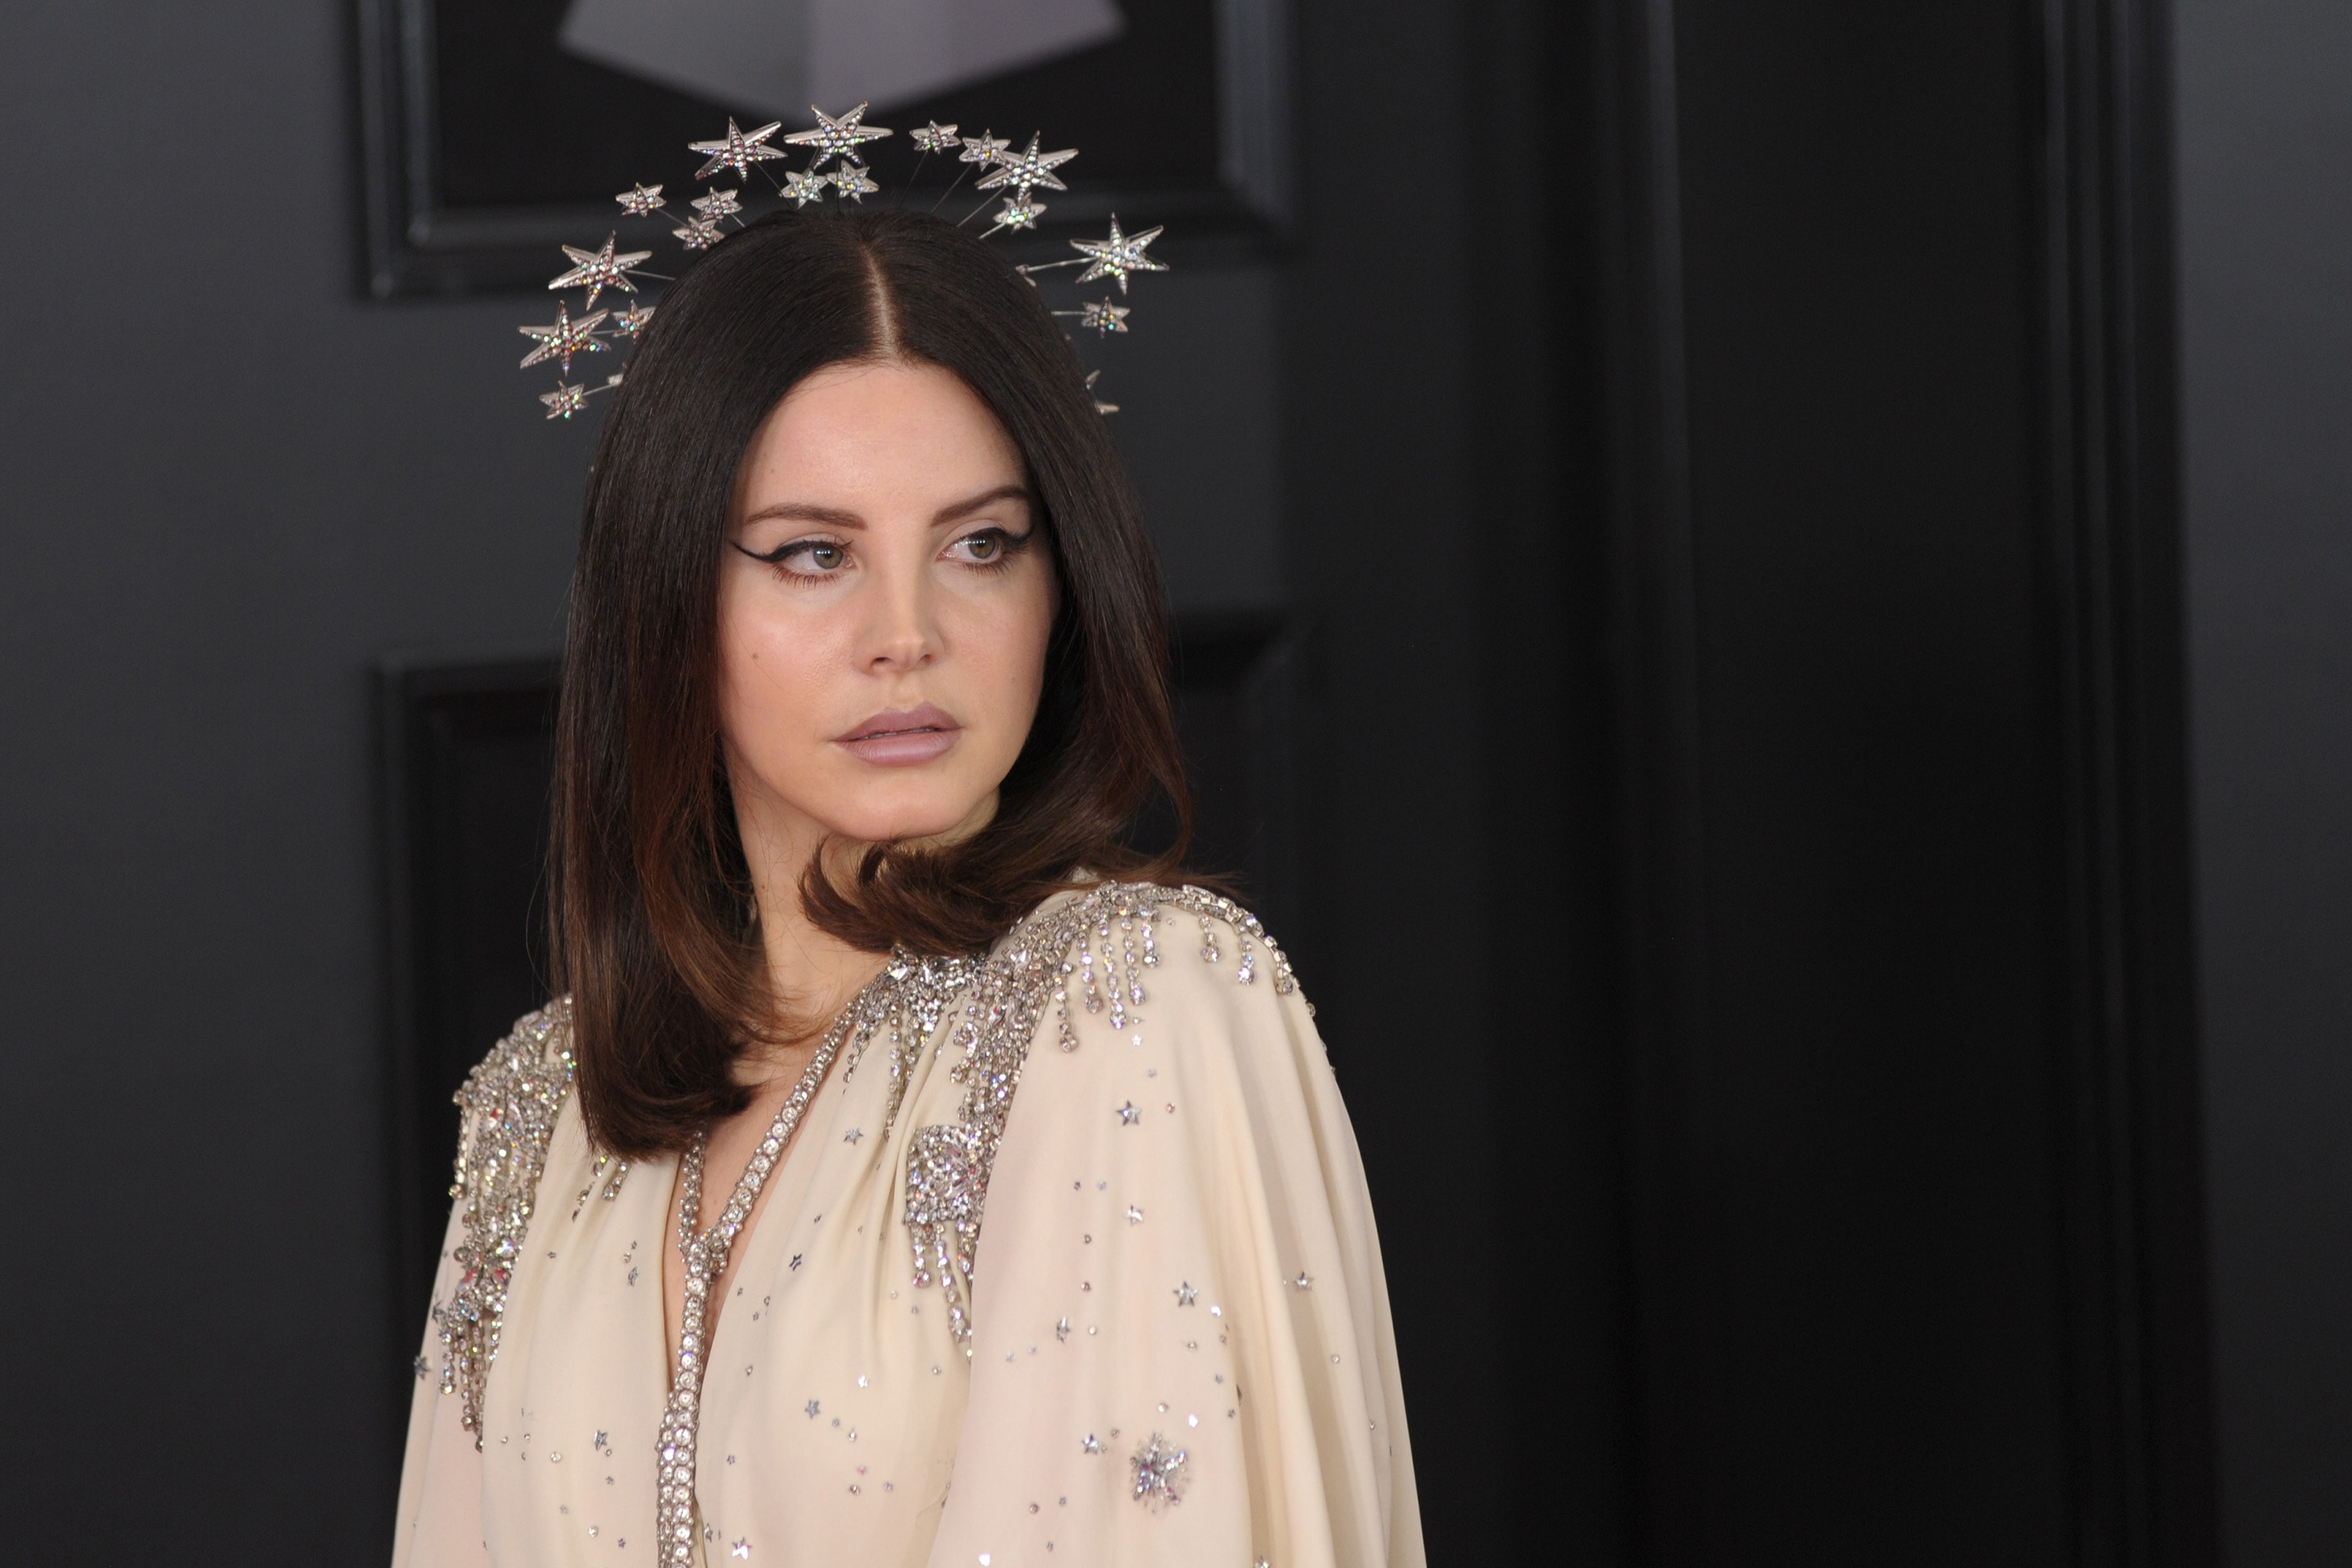 Lana del Rey cancels Israel performance following backlash from Palestinians. (Photo: WENN)